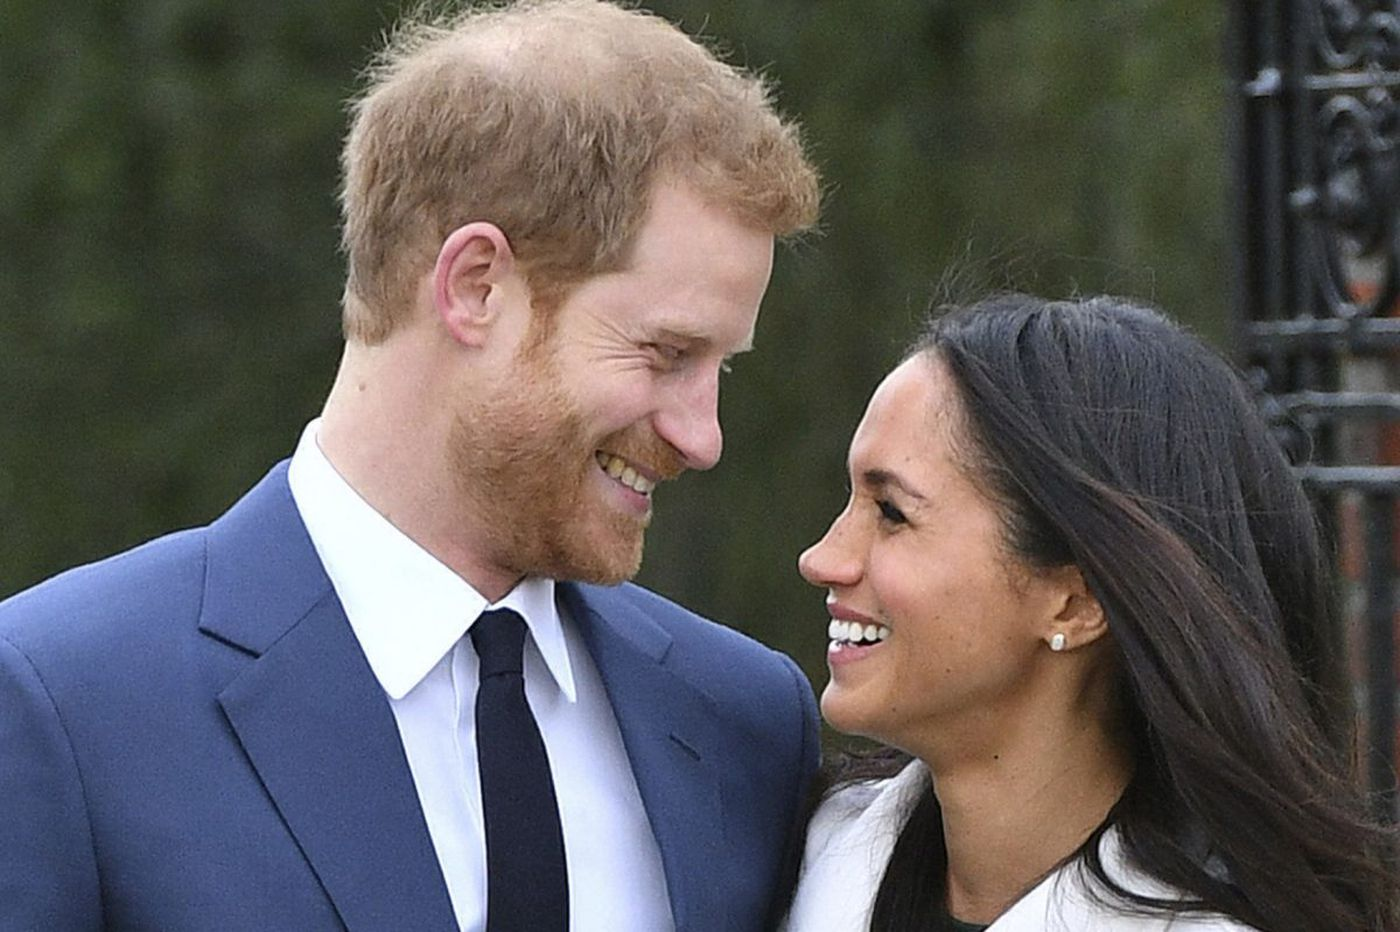 Prince Harry and Meghan Markle's engagement: Is their love enough to conquer racism? | Solomon Jones